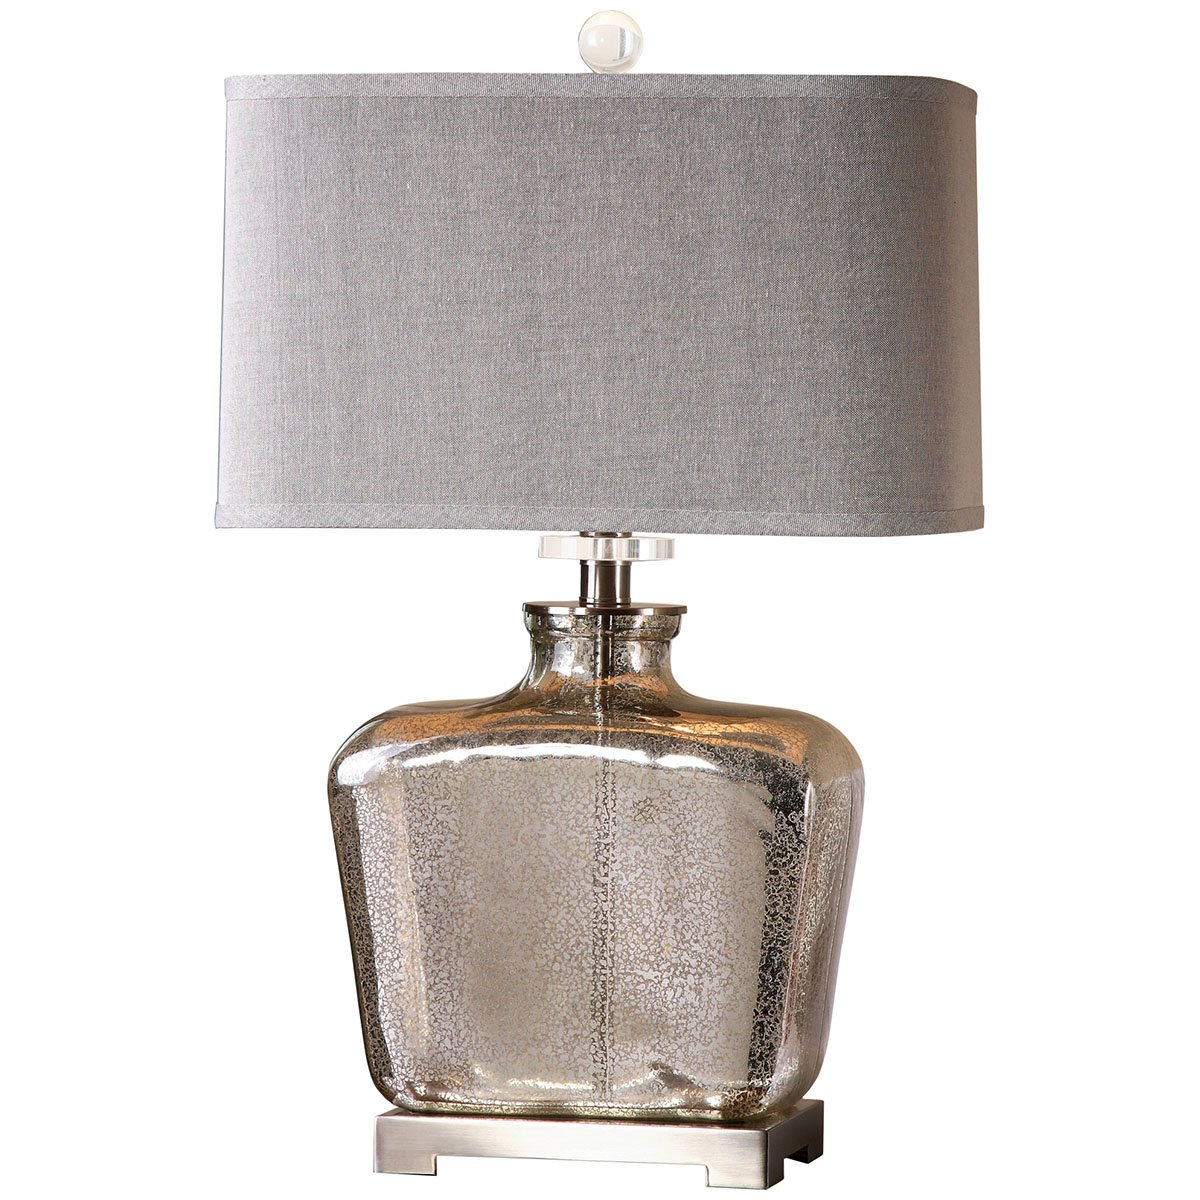 Amazing Amazon.com: Uttermost 26851 1 Molinara Mercury Glass Table Lamp: Home U0026  Kitchen